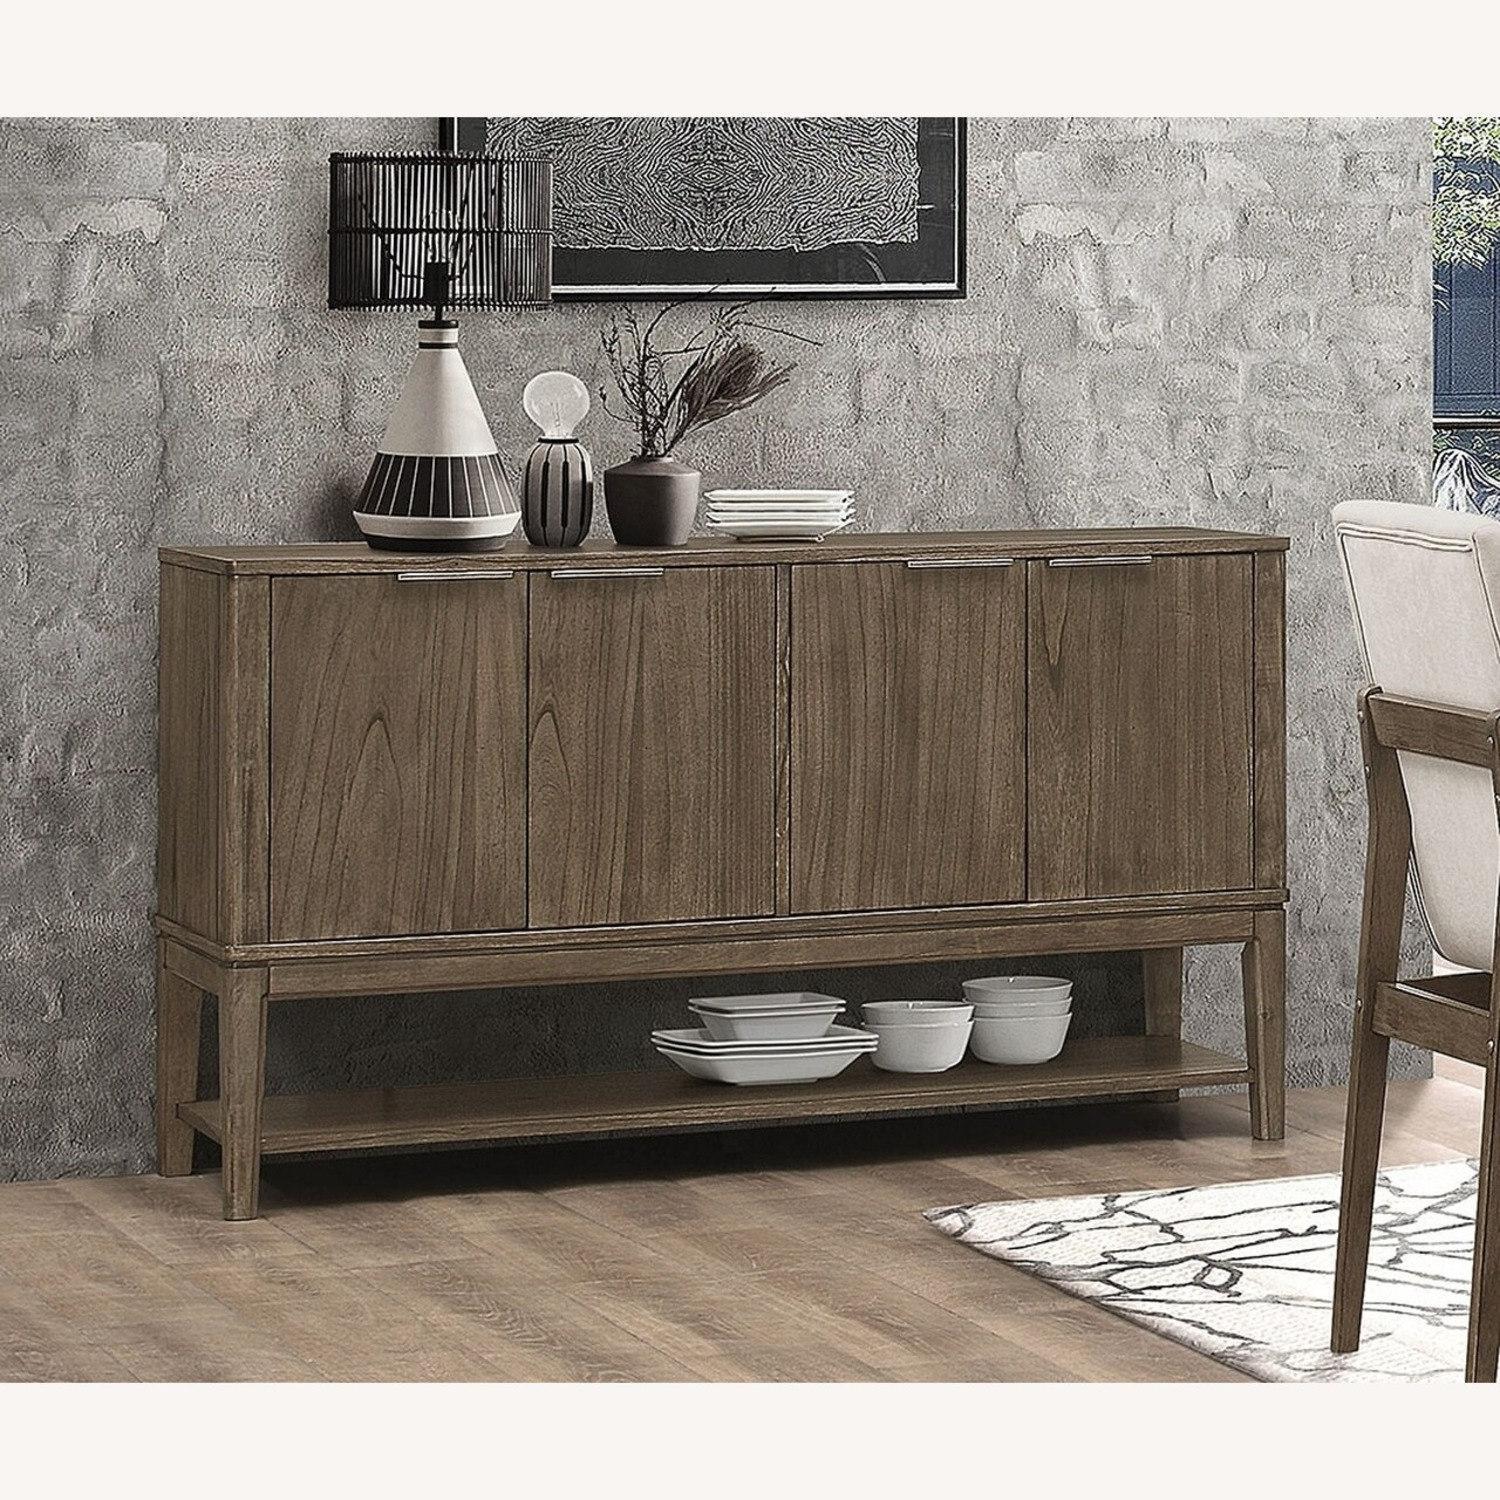 Contemporary Server In Wheat Brown Solid Hardwood - image-2